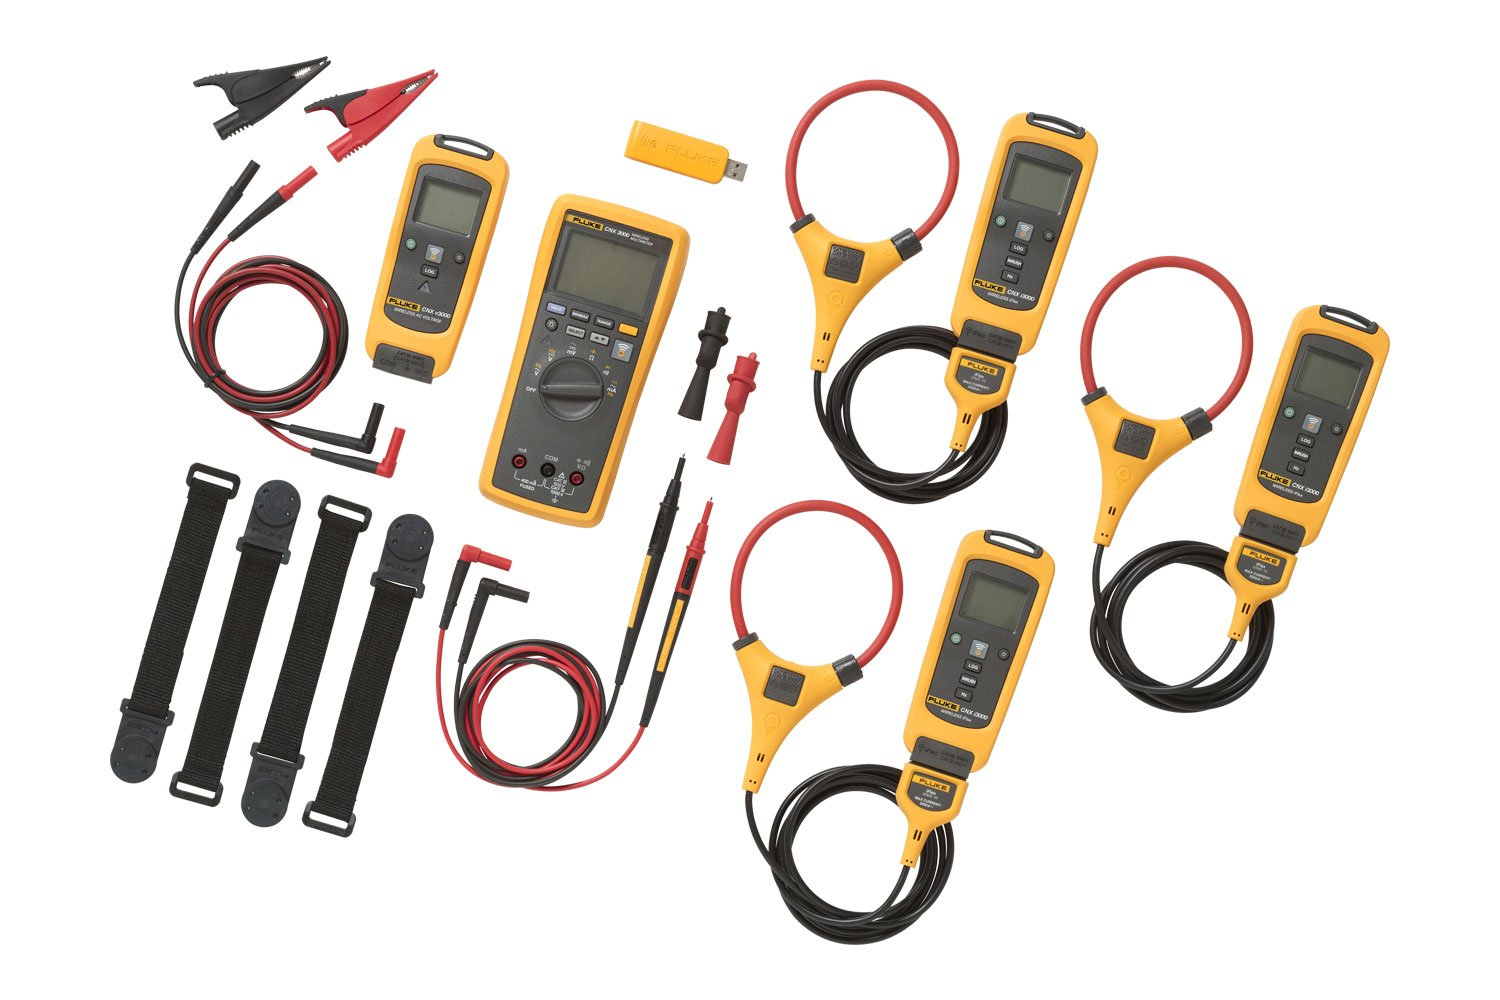 Fluke Cnx 3000 Wireless Multimeter Laptop Tests Checking Voltage And Short Circuits